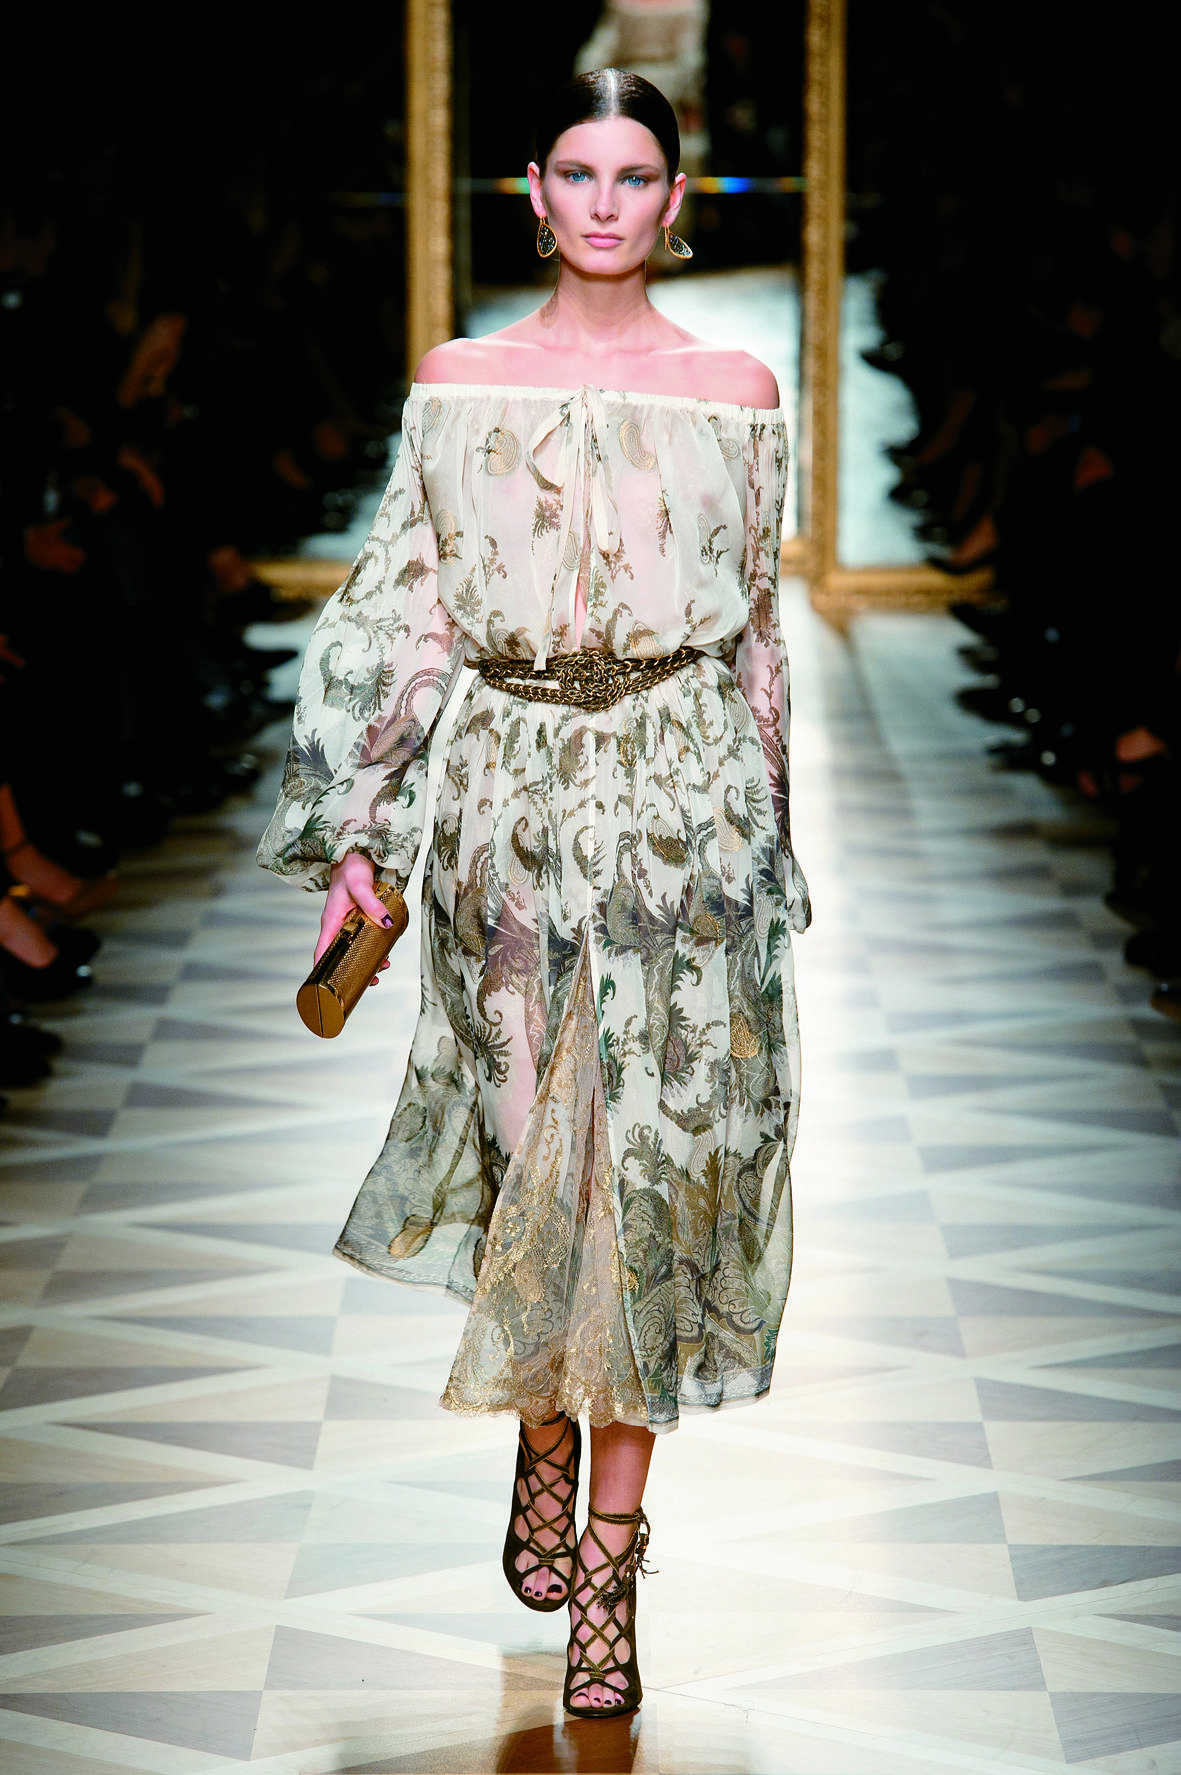 Salvatore Ferragamo Womenswear Fall/Winter 2012/2013